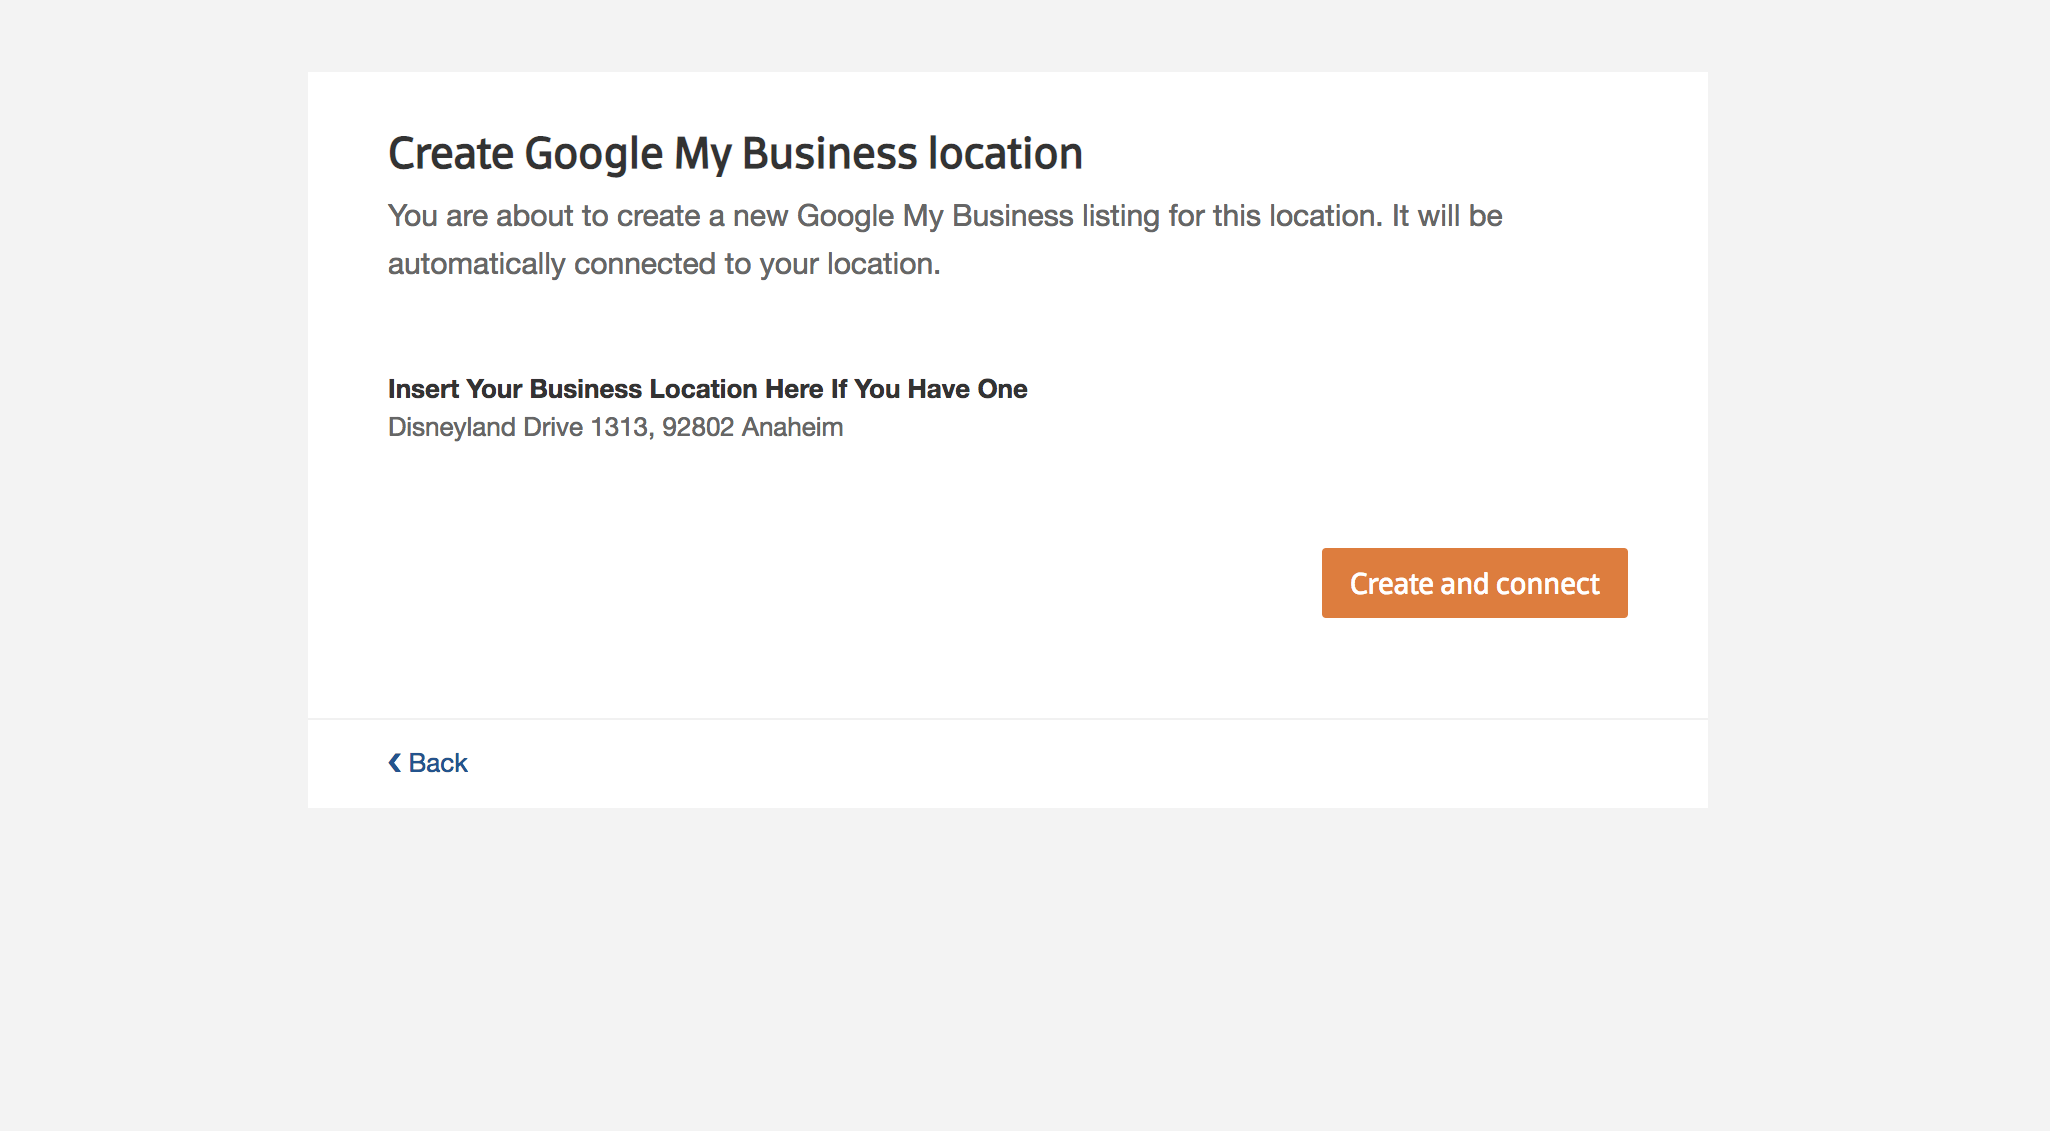 Display of Google Confirming Your Request to Access your online business listing information